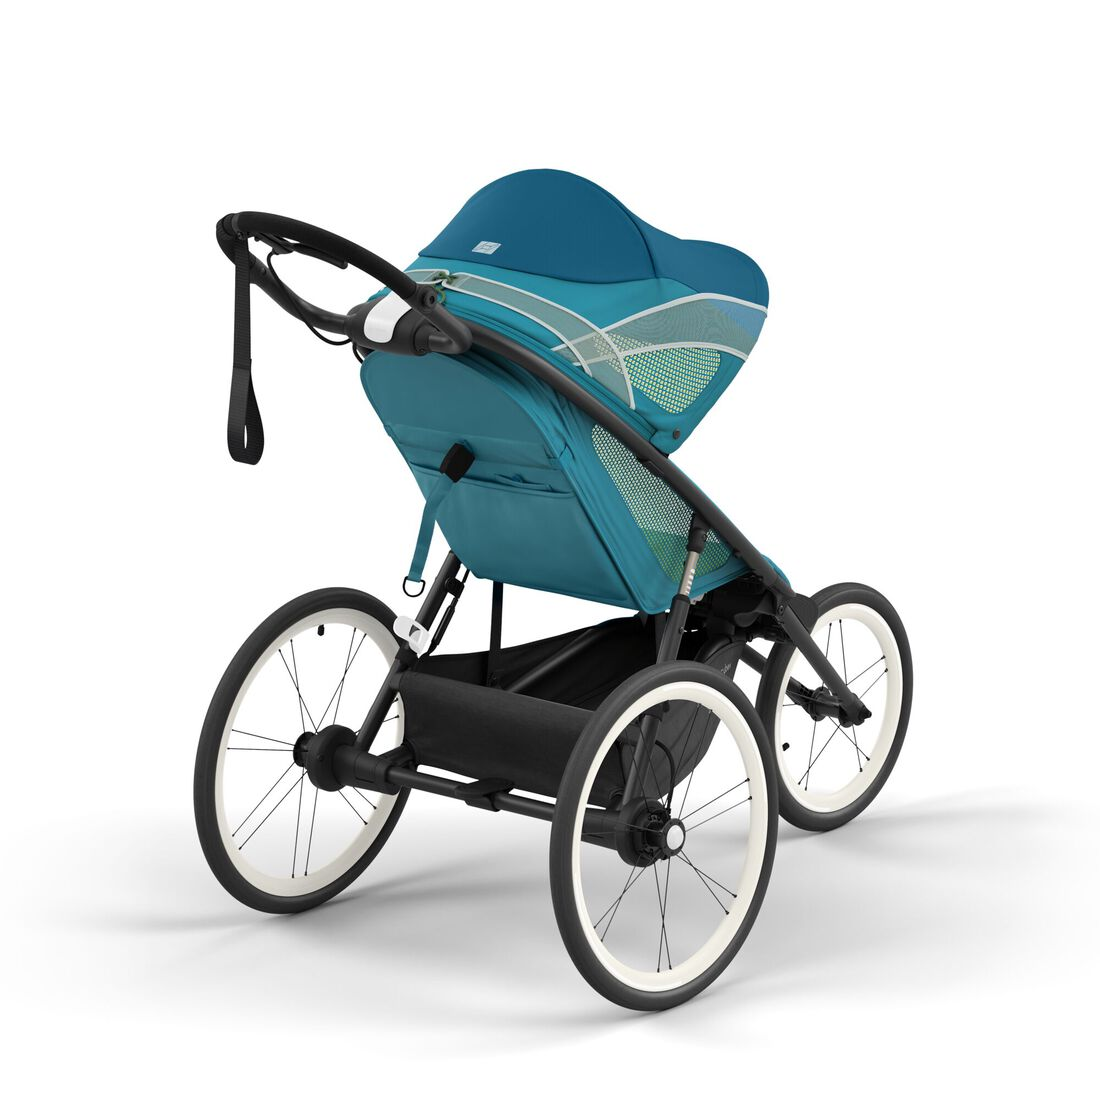 CYBEX Avi Seat Pack - Maliblue in Maliblue large image number 5